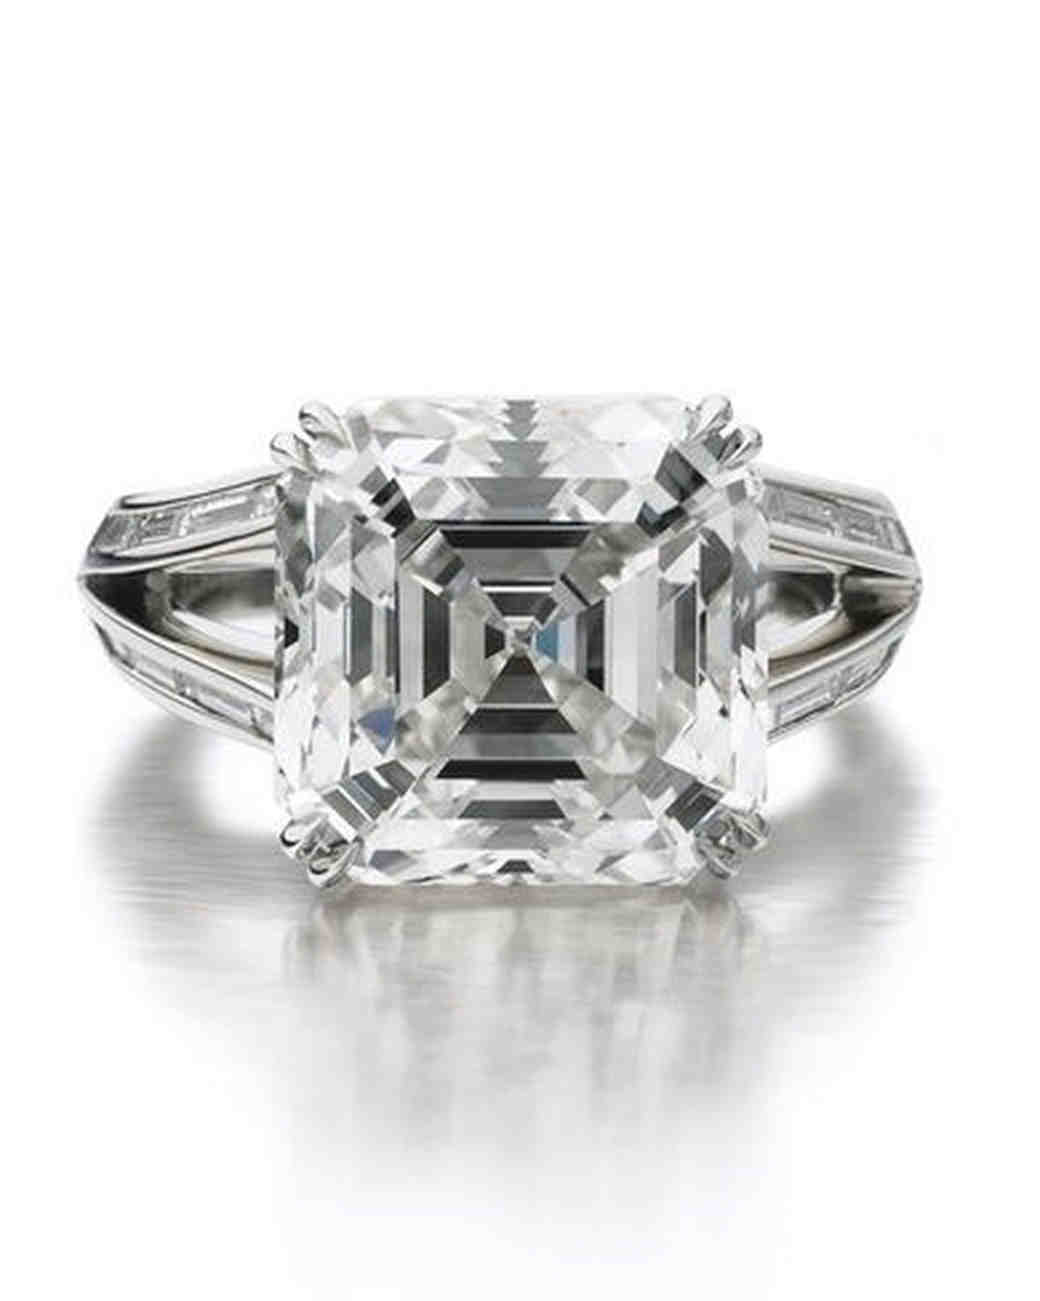 Forevermark by Maria Canale vintage-inspired engagement ring with split shank and asscher-cut diamond